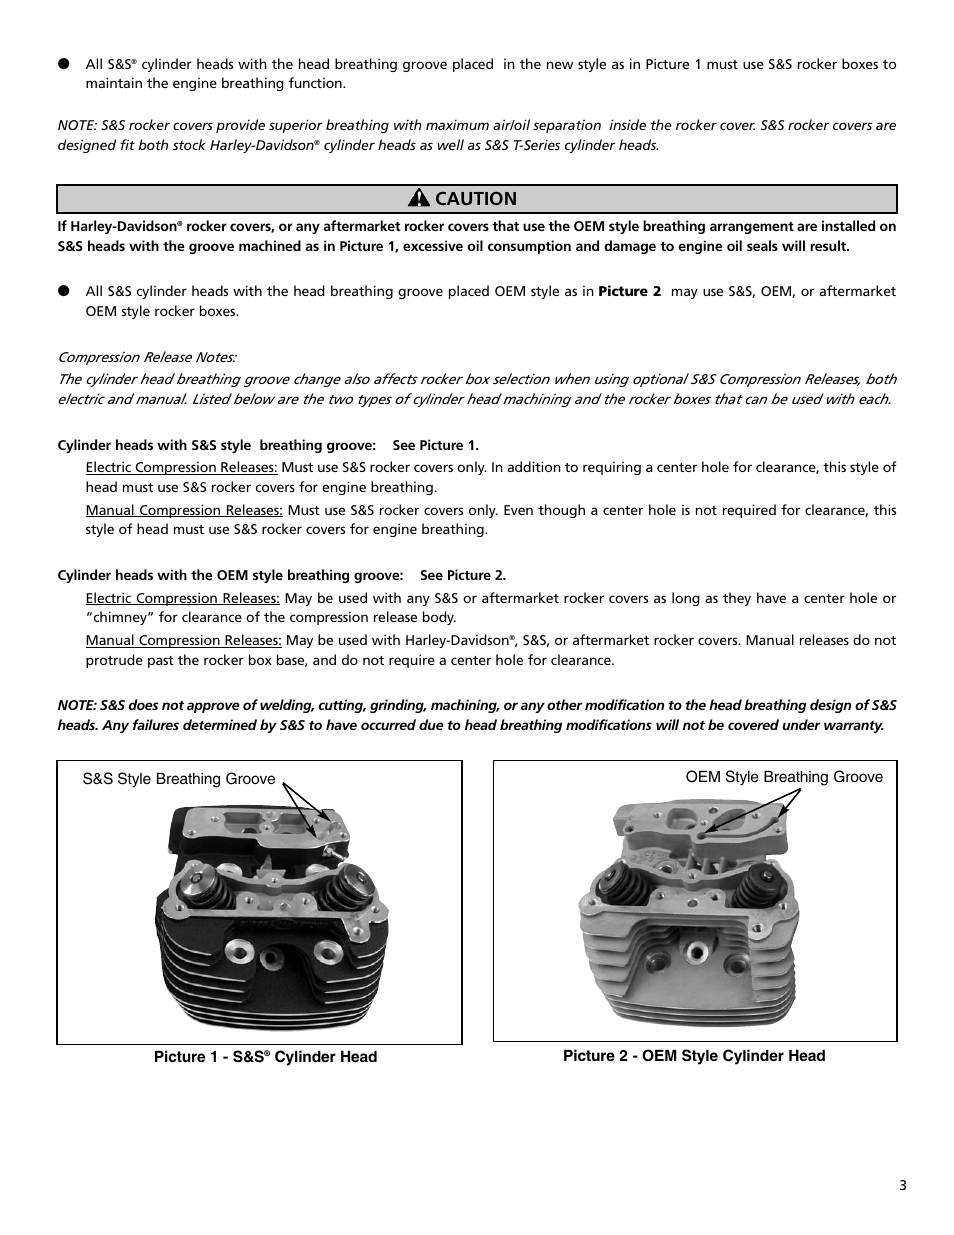 Caution | S&S Cycle Head Breathing Groove Change for S&S Super Sidewinder  Plus (SSW+) and Heads for Harley-Davidson Twin Cam 88 Models User Manual |  Page 3 ...